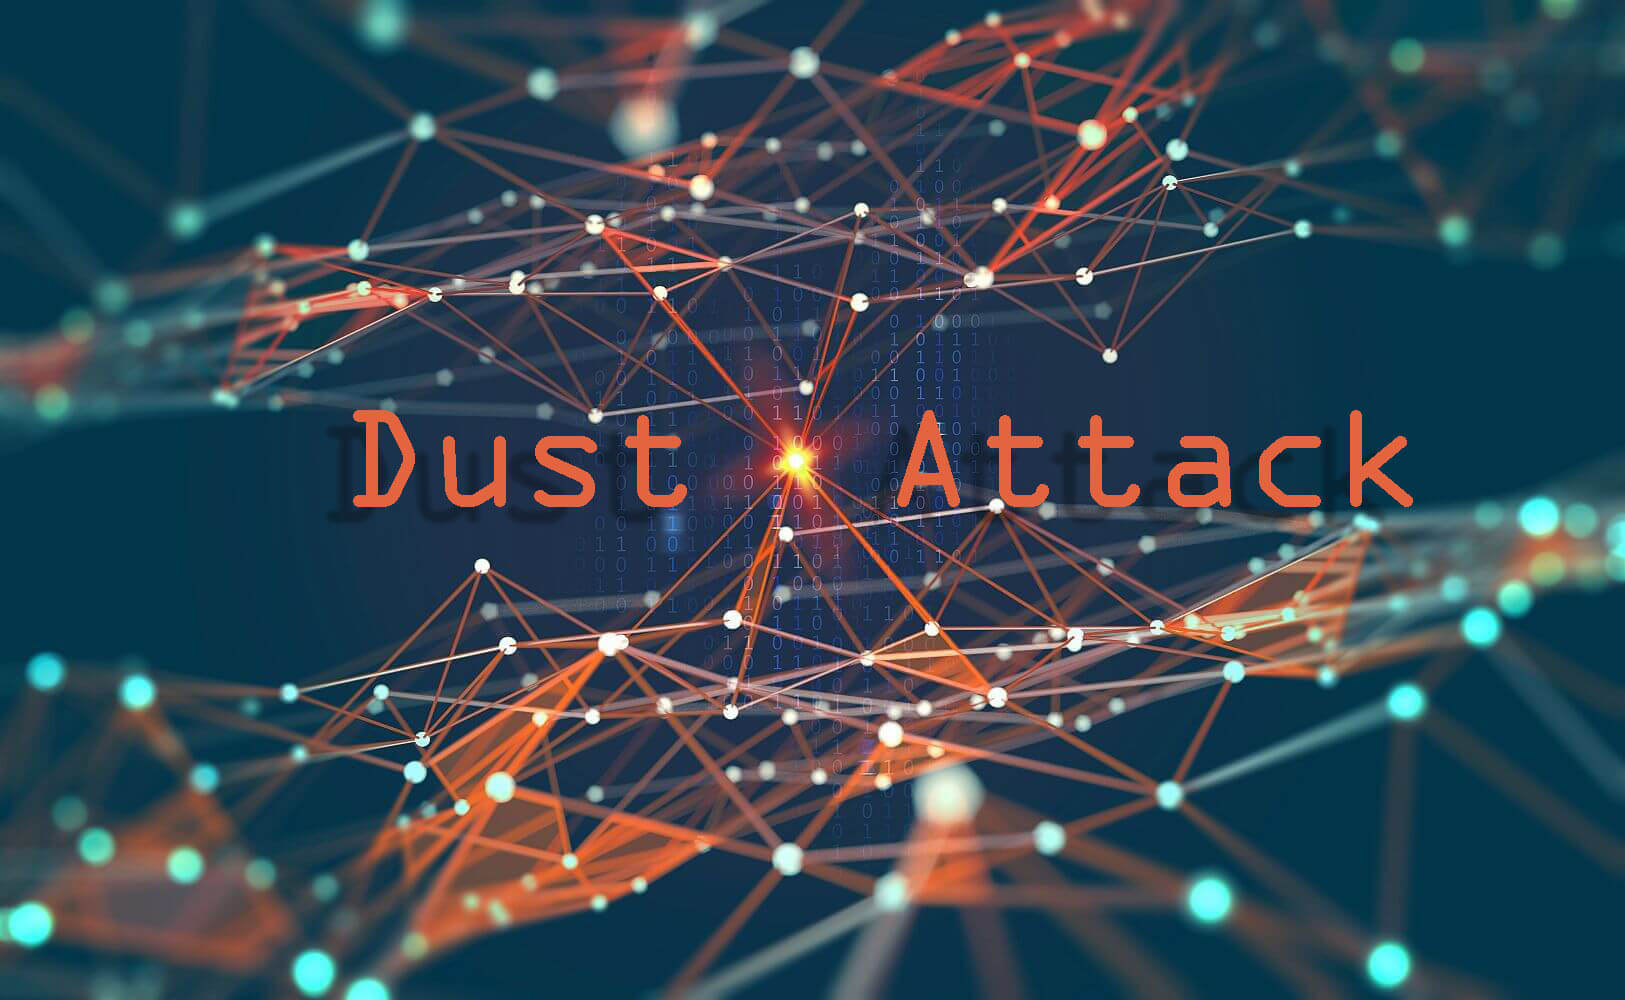 dust-attack